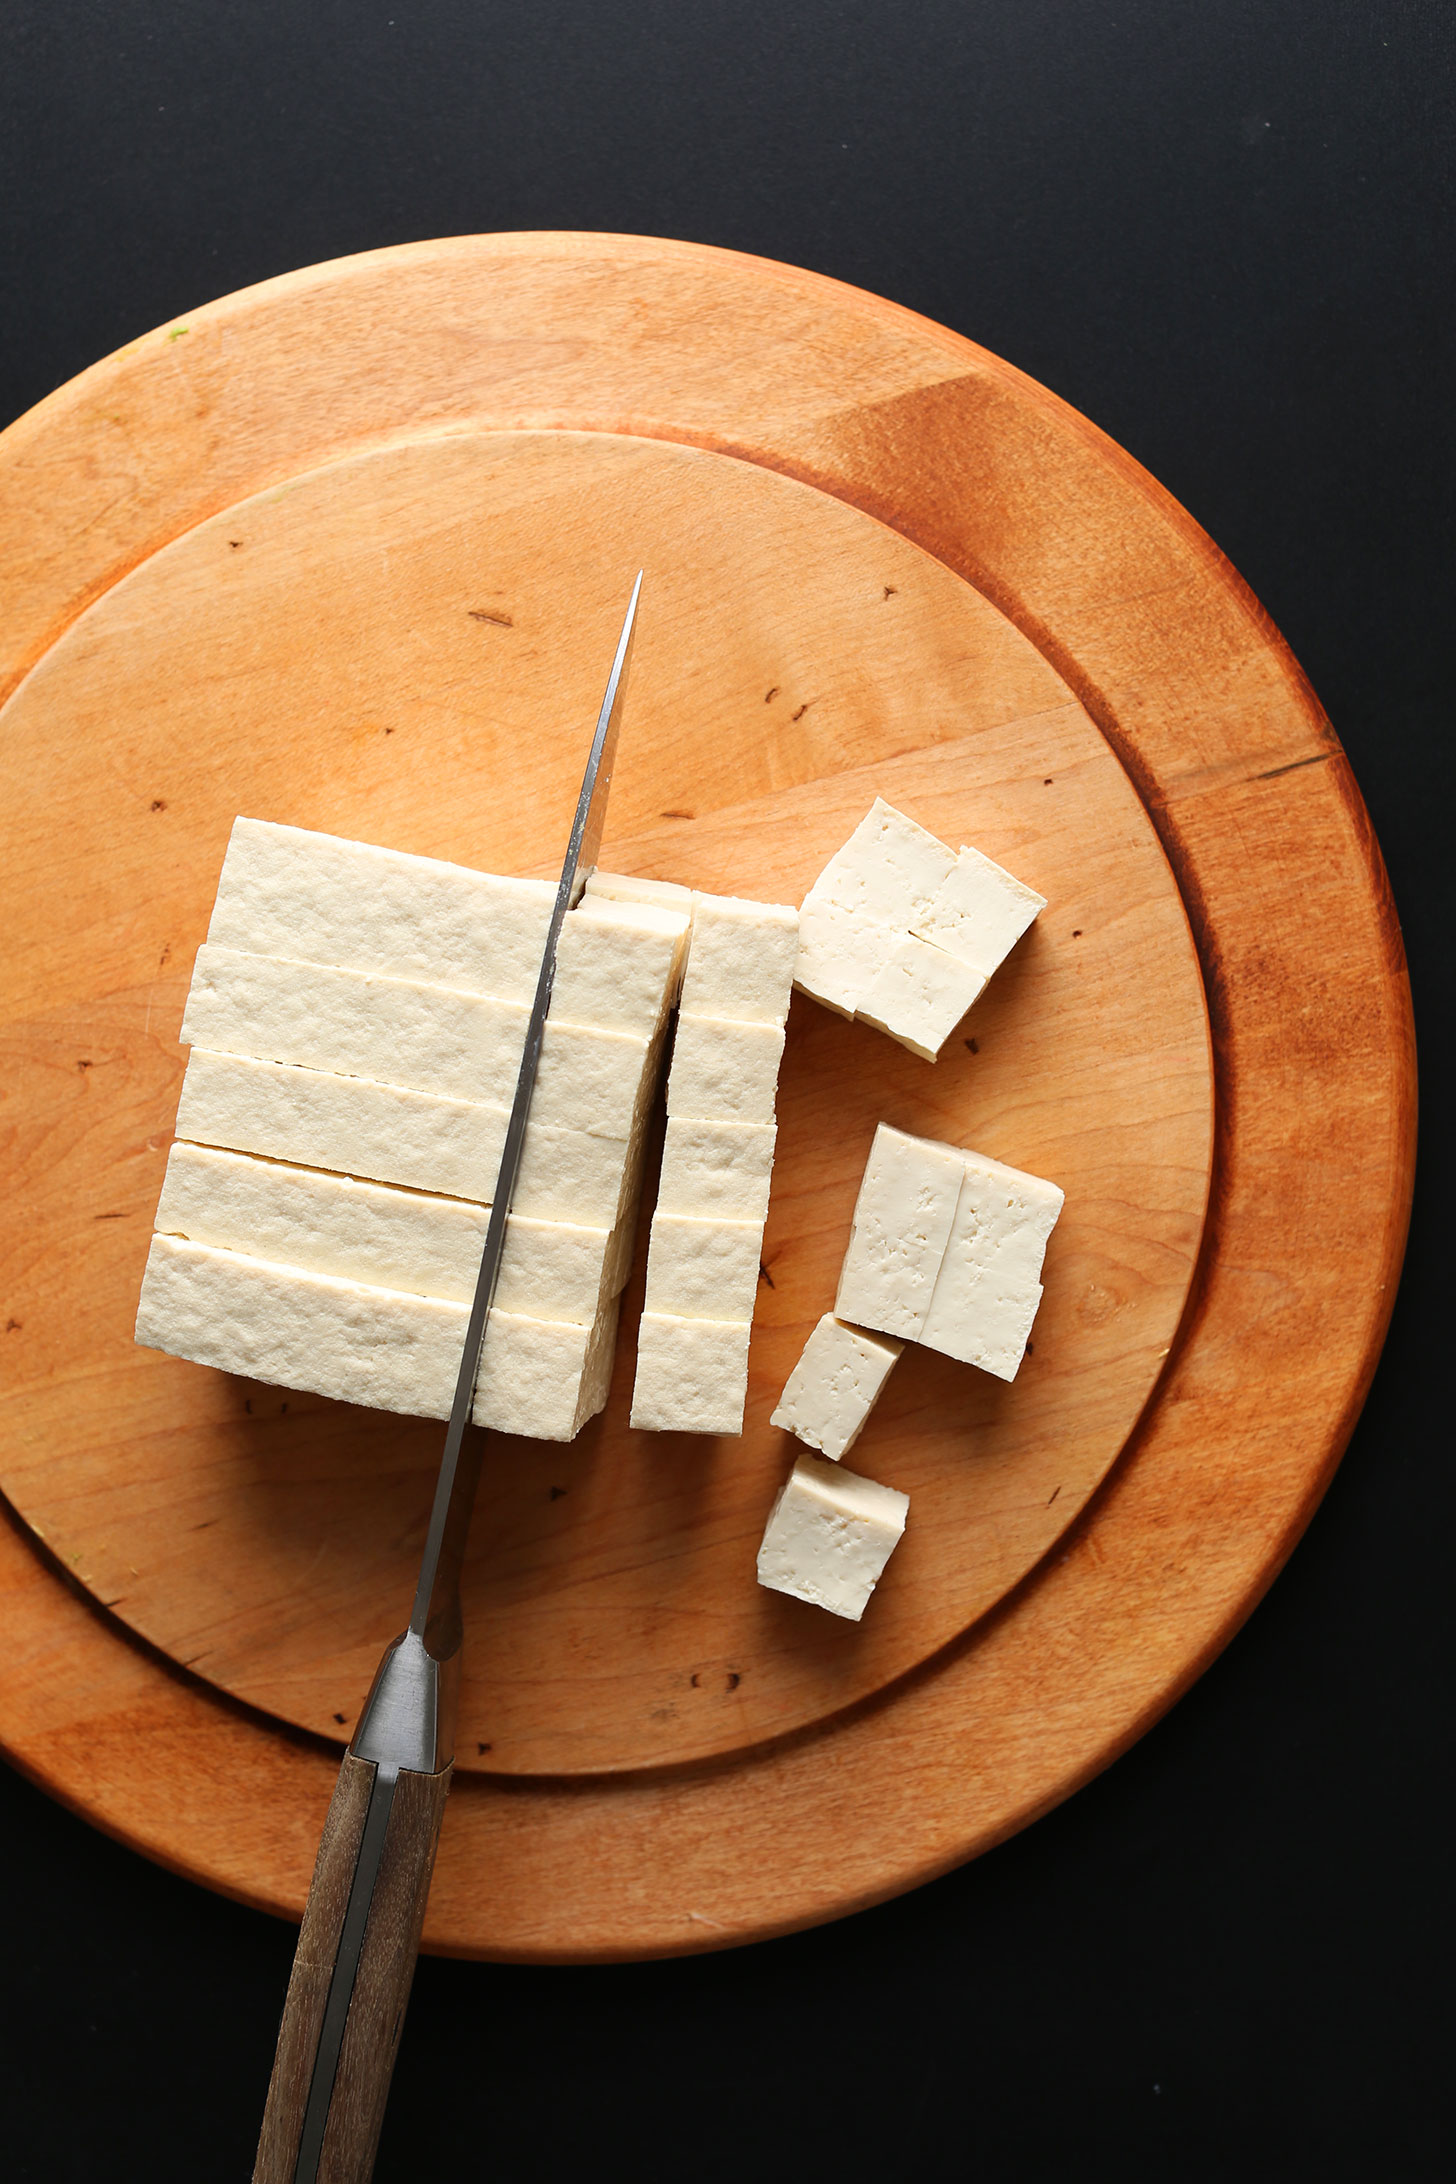 Showing how to cut tofu into cubes for easy Crispy Tofu